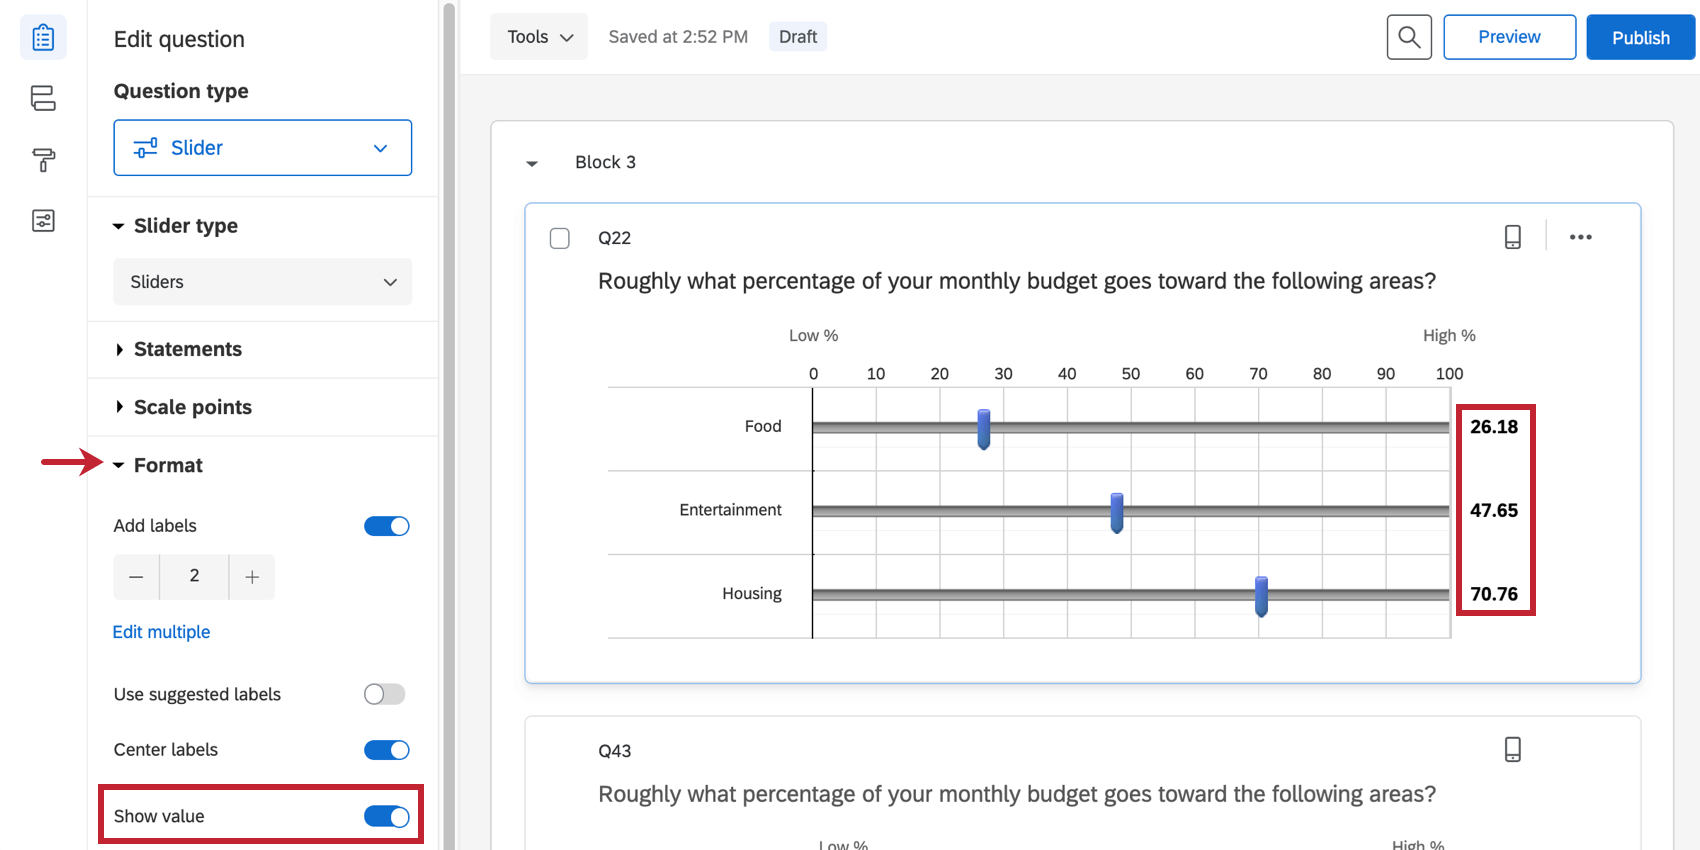 Show value is selected, so the answer provided on the slider makes a number come up